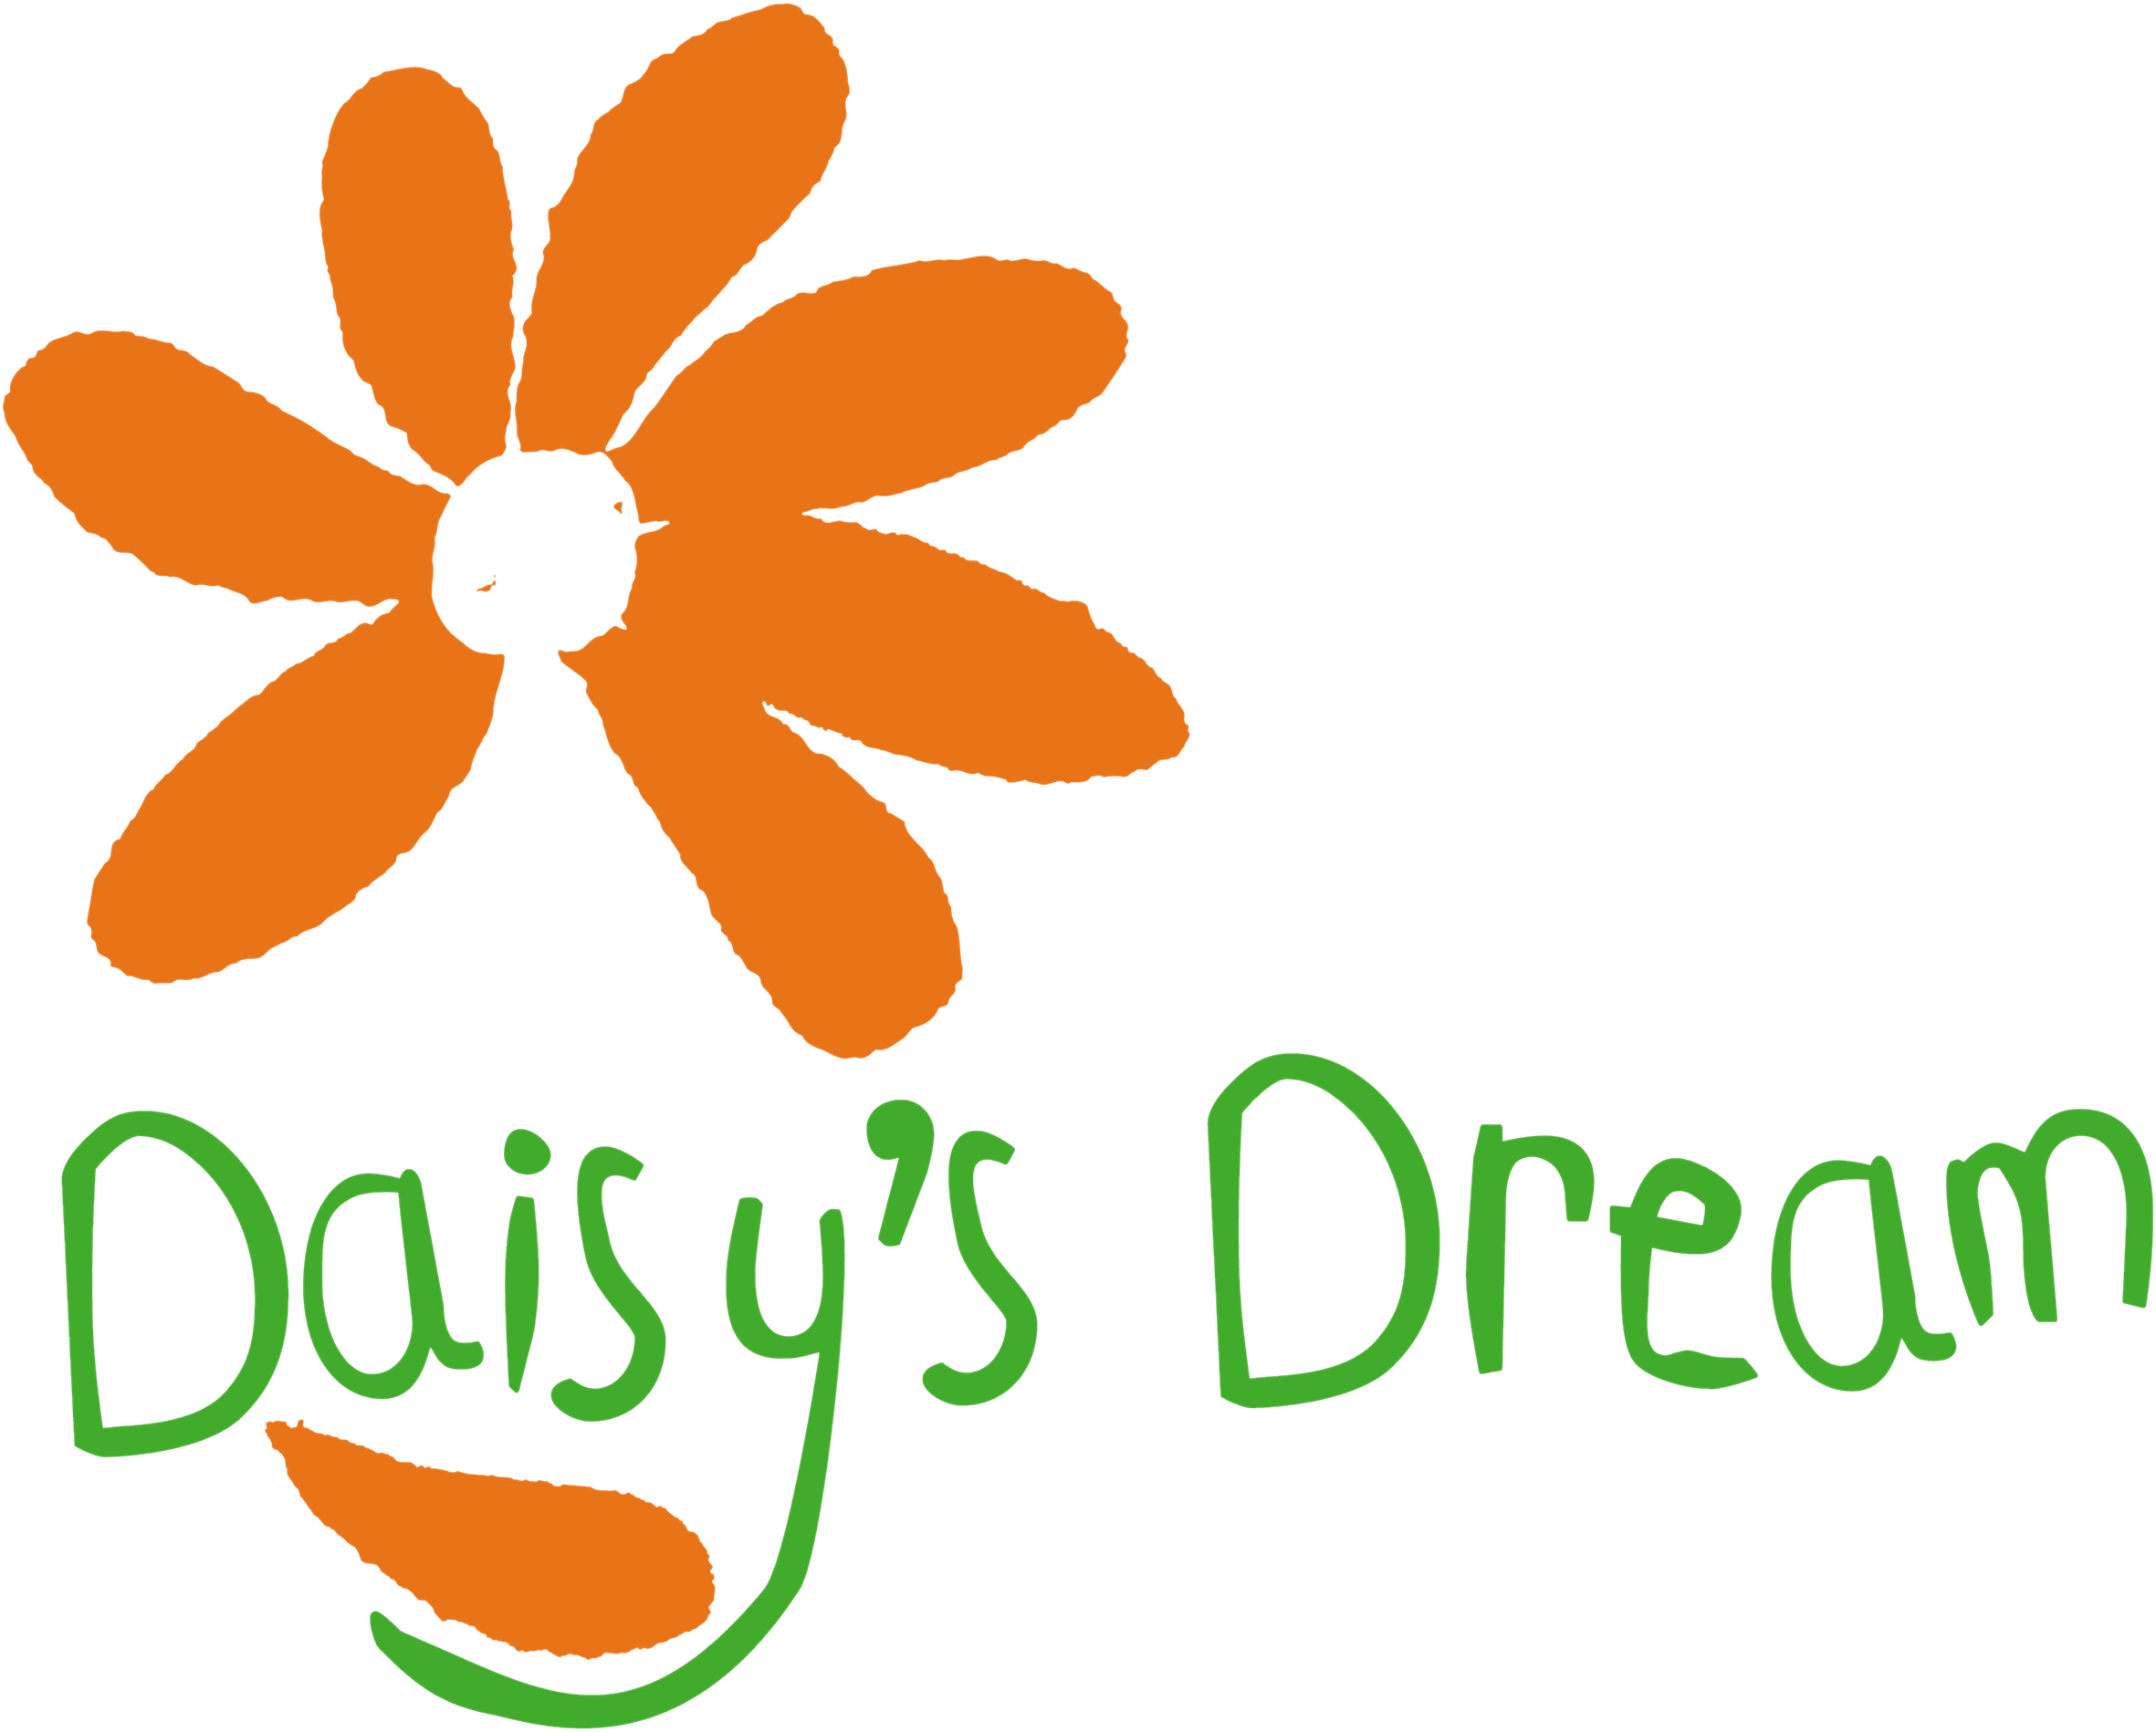 Daisy's Dream logo